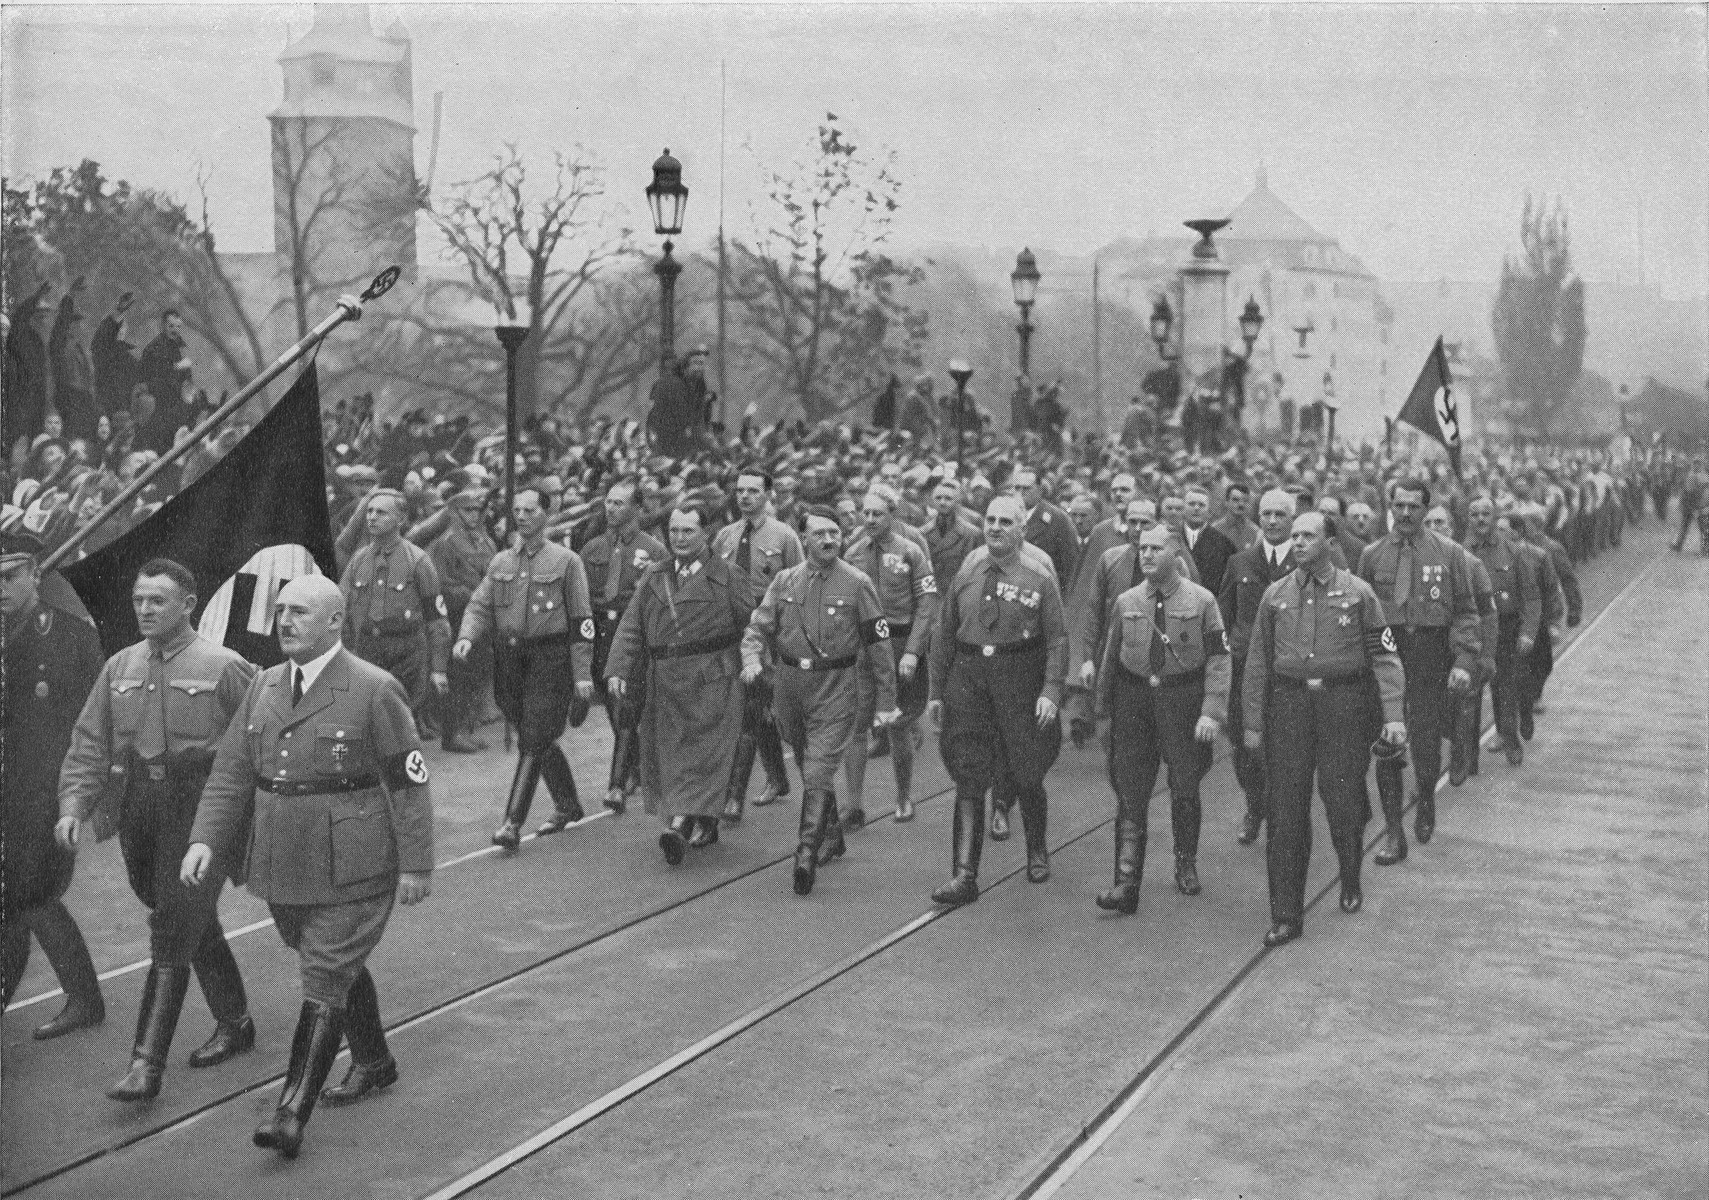 Adolf Hitler (center, front row) and Hermann Goering (third from left, front row) lead a march through the streets of Munich to commemorate the November 8-9, 1923 Beer Hall Putsch. Julius Streicher marches with the Nazi colors (lower left corner, third from left).